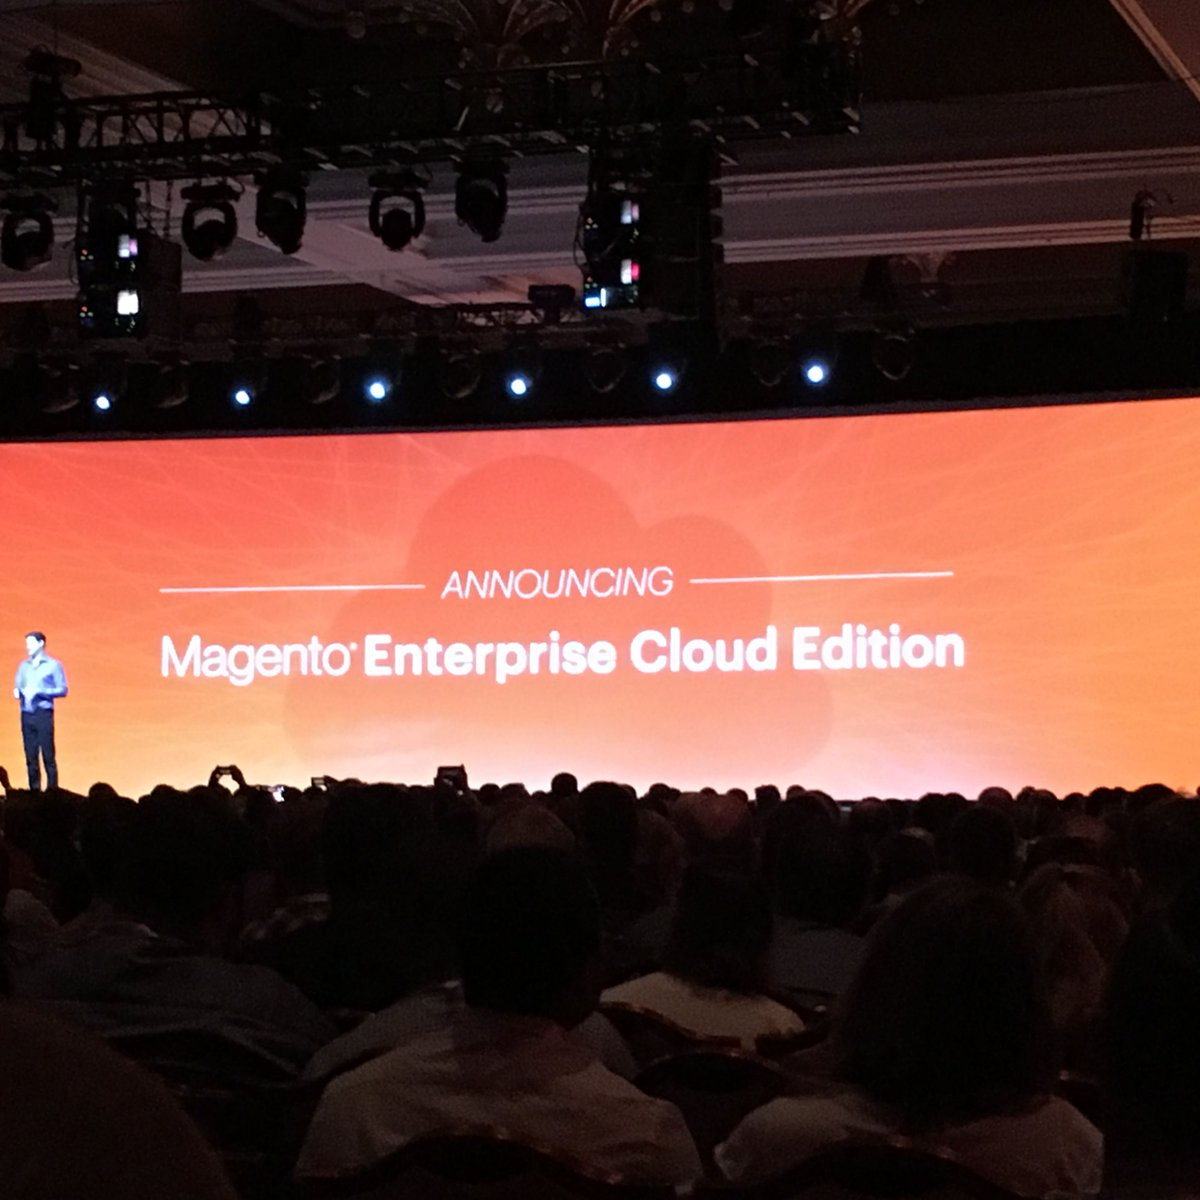 mediaspa: Magento Enterprise Cloud Edition!nnTo quote Sally: Yes, YES, YES!!nn#MagentoImagine #RealMagento @magento #ecommerce https://t.co/WvzA4lZqx4